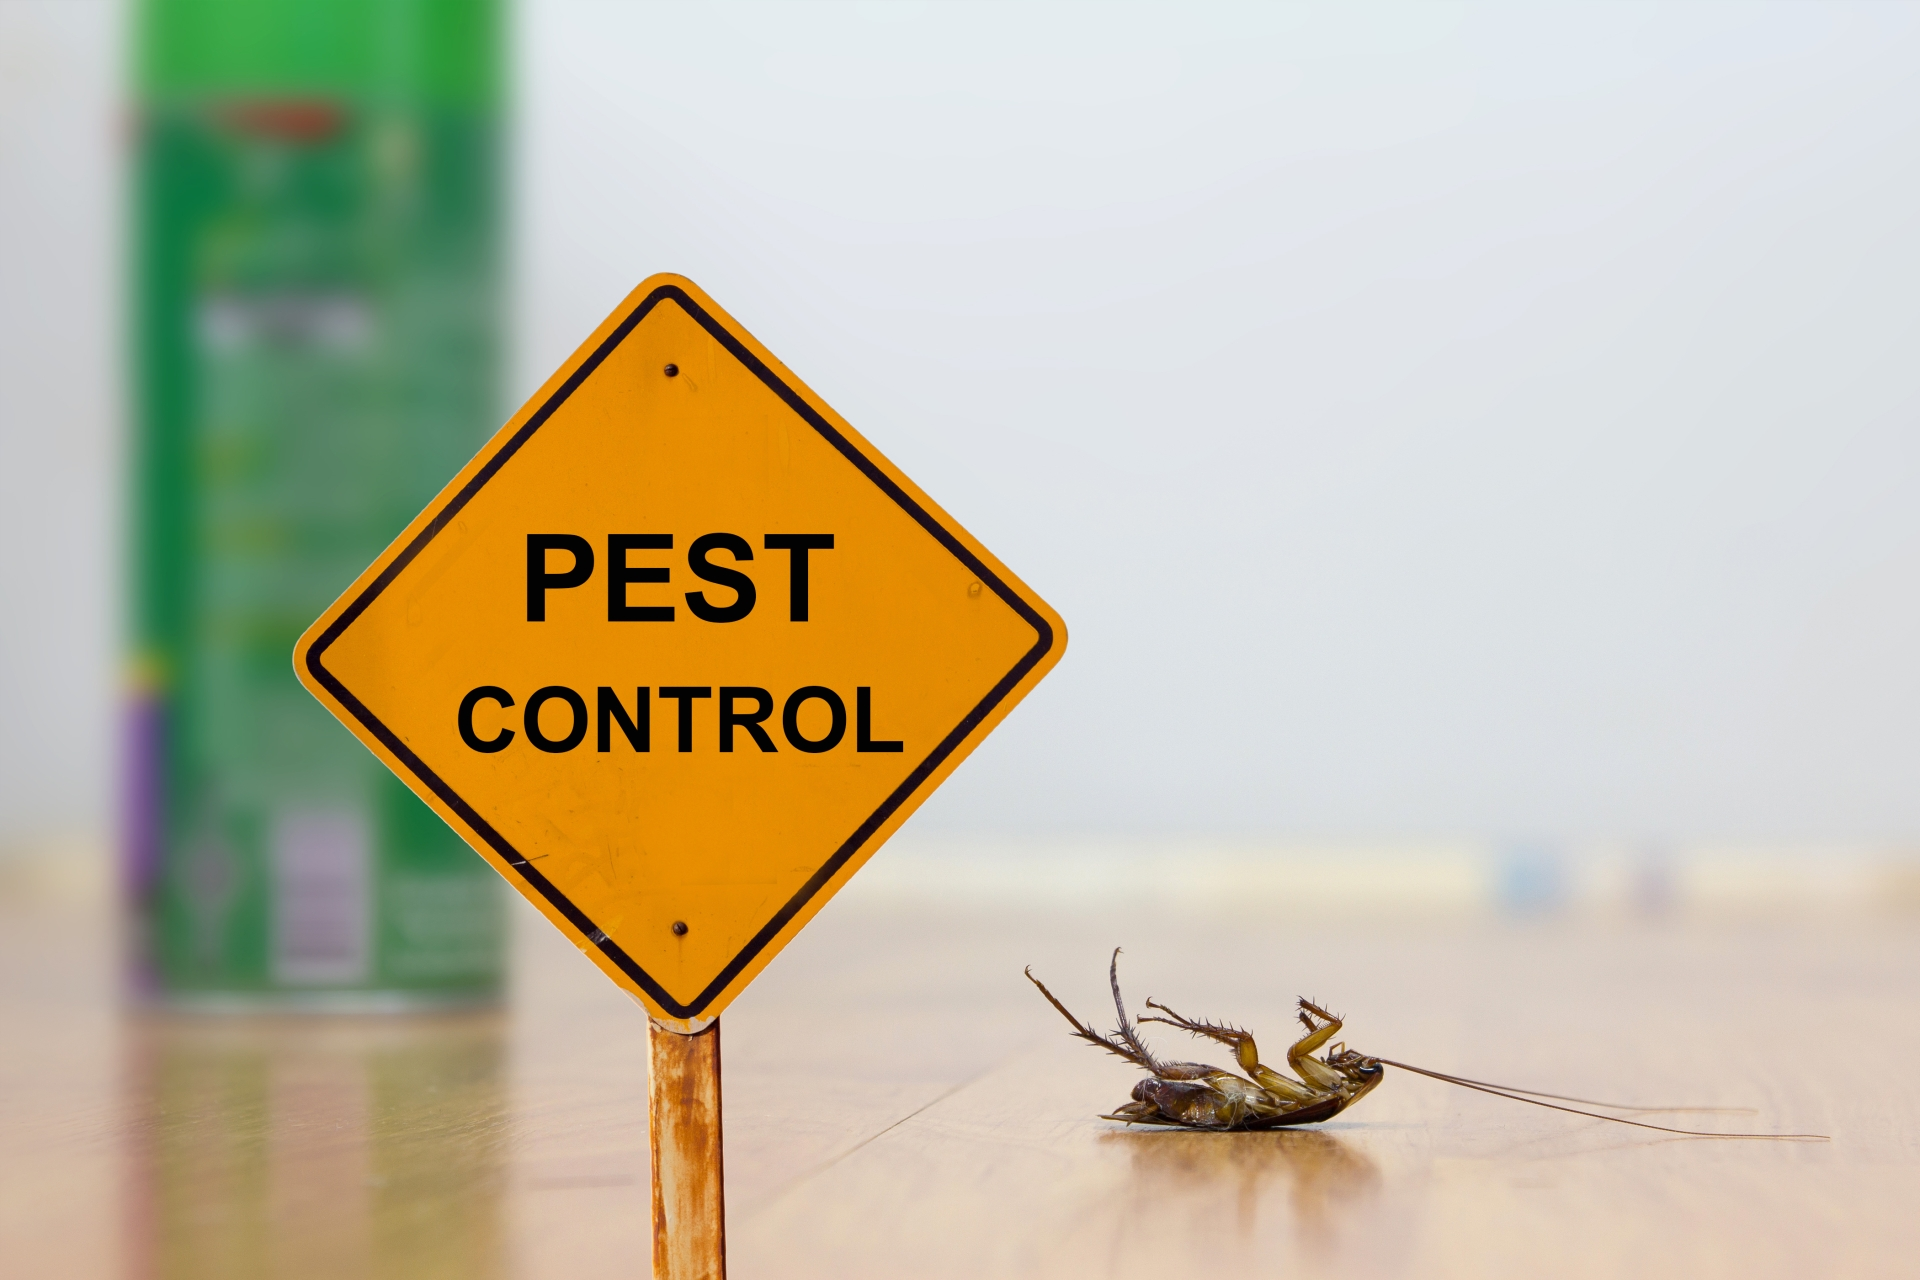 24 Hour Pest Control, Pest Control in Stanmore, Queensbury, HA7. Call Now 020 8166 9746